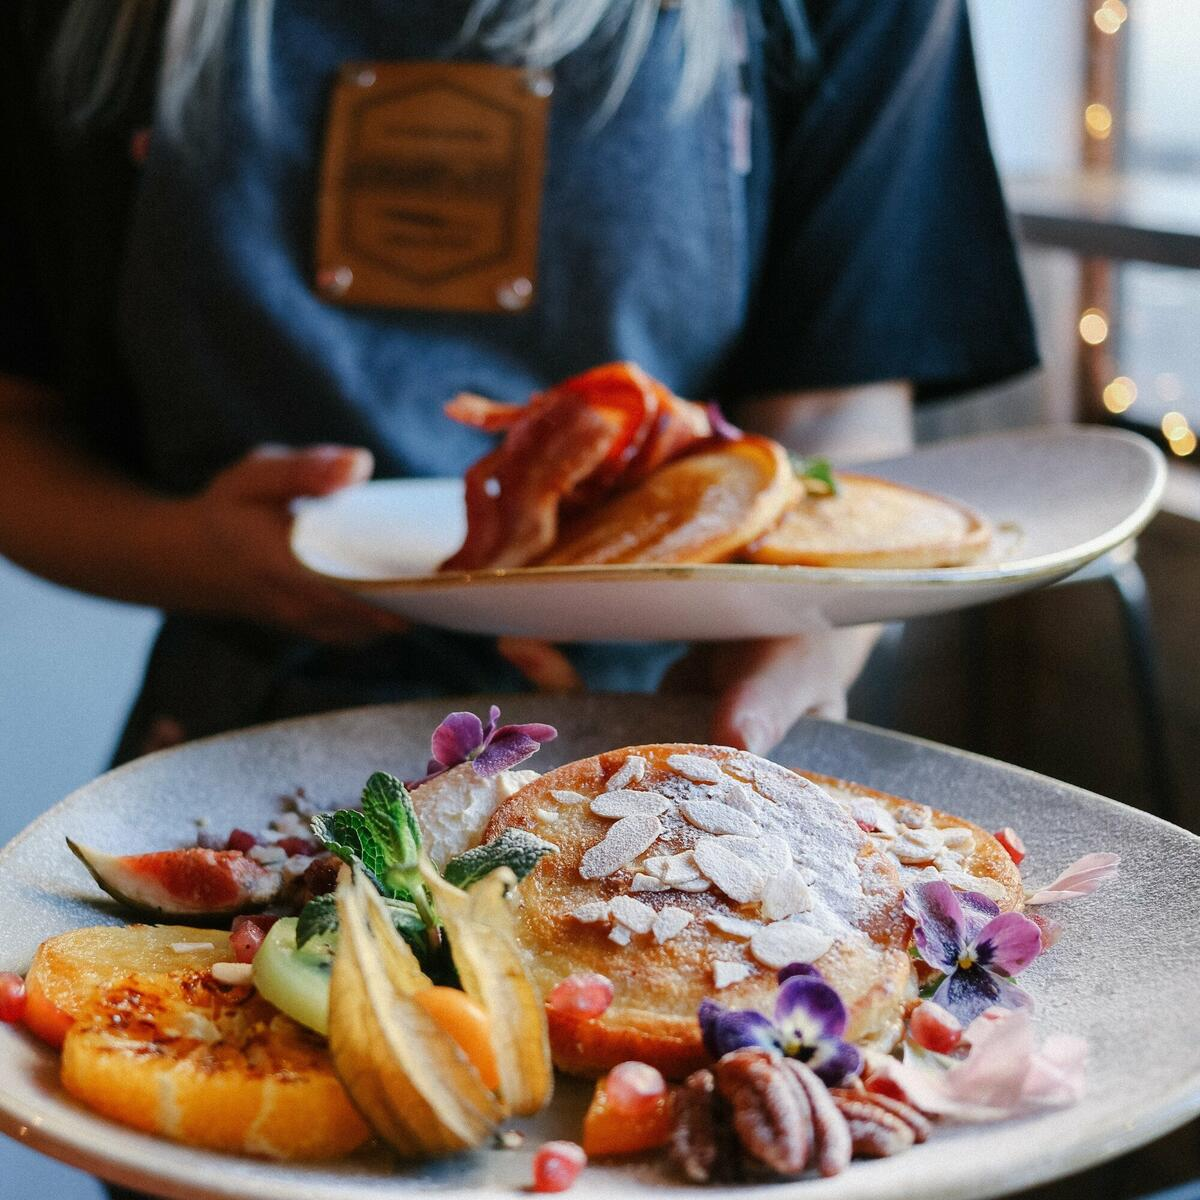 Sweet or savoury, we have brunch for everyone!